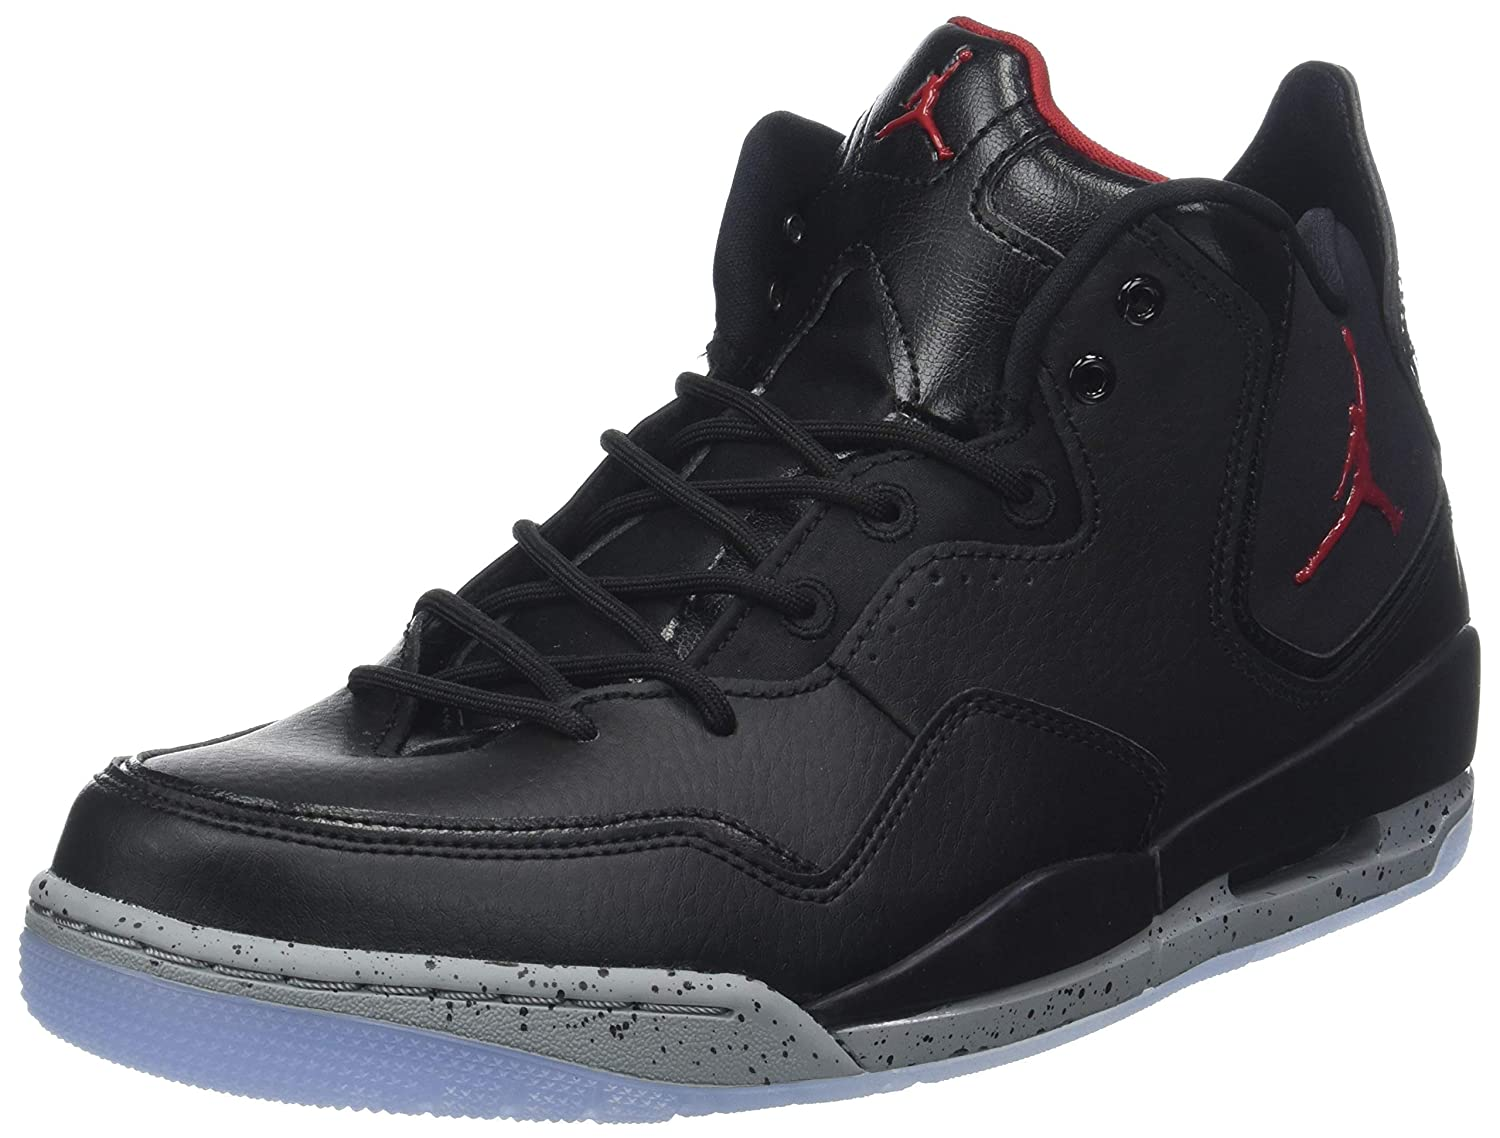 NIKE Jordan Courtside 23, Chaussures 42 de Basketball Homme 42 Chaussures EU|Noir (Black/Gym Red/Particle Grey 023) 417e9f